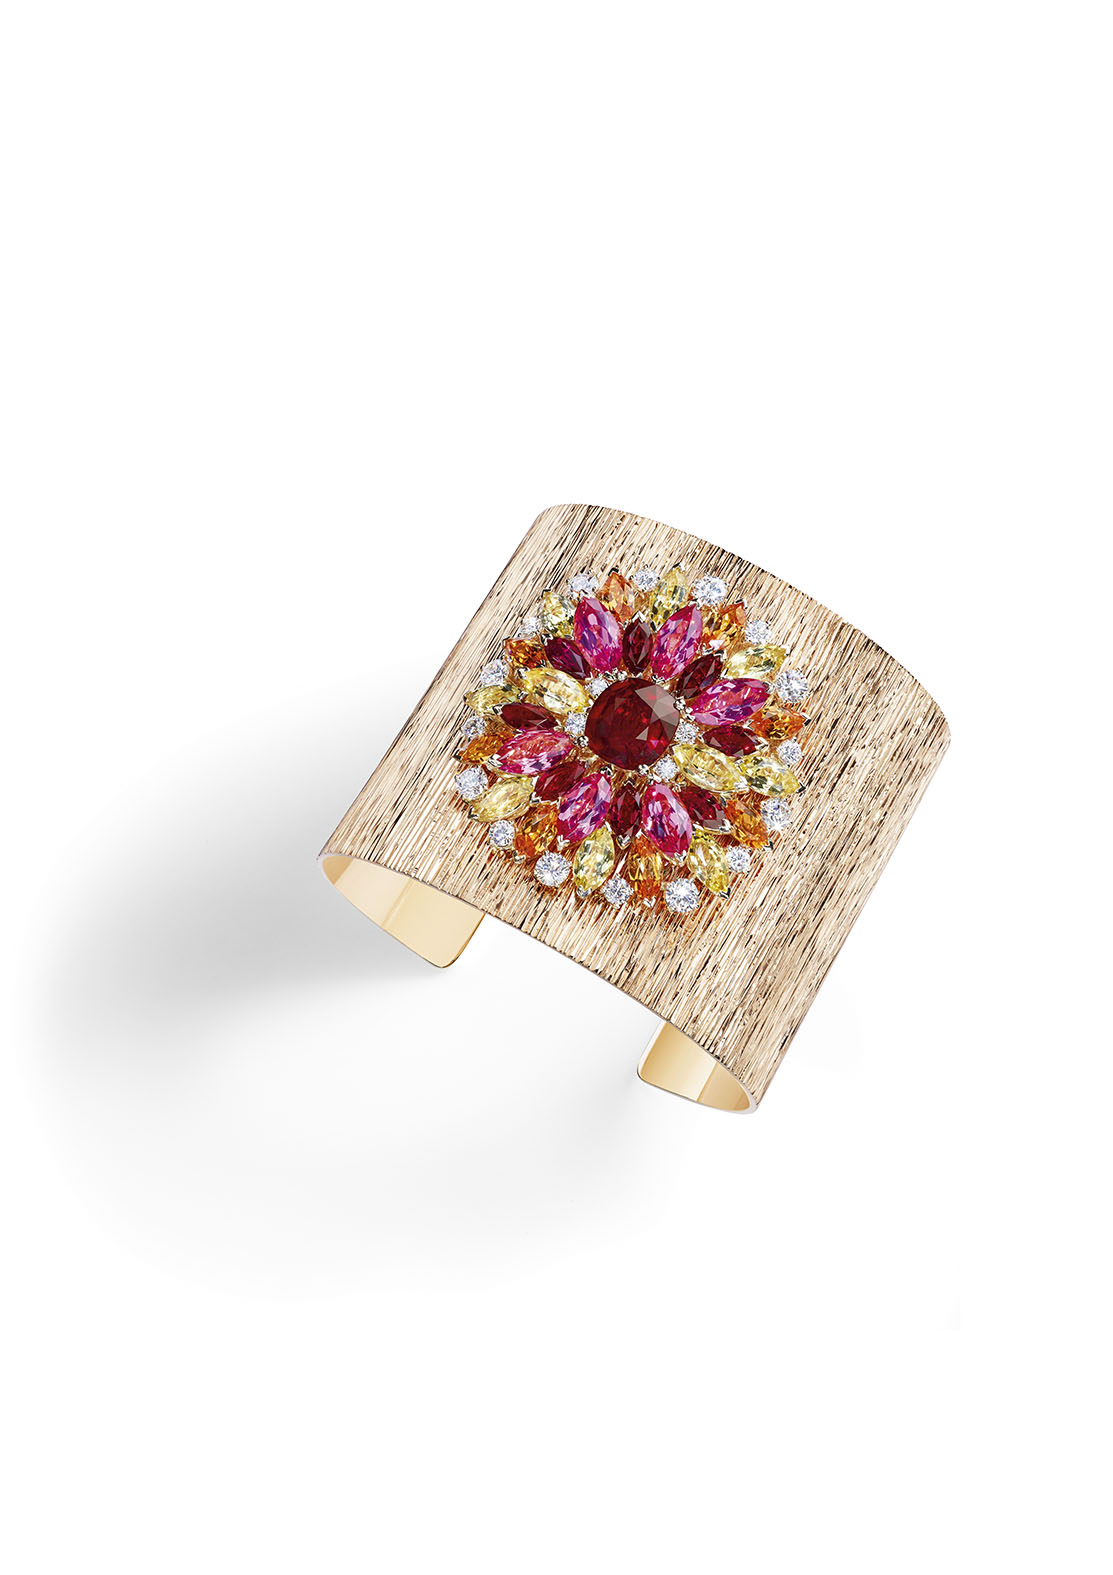 Piaget's High Jewelry Collection: Colorful Cuff Bracelet 18k pink gold set with a cushion-cut ruby, eight marquise-cut rubies, six marquise-cut pink spinels, eight marquise-cut mandarin garnets, 10 marquise-cut yellow beryls and 20 brilliant-cut diamonds.